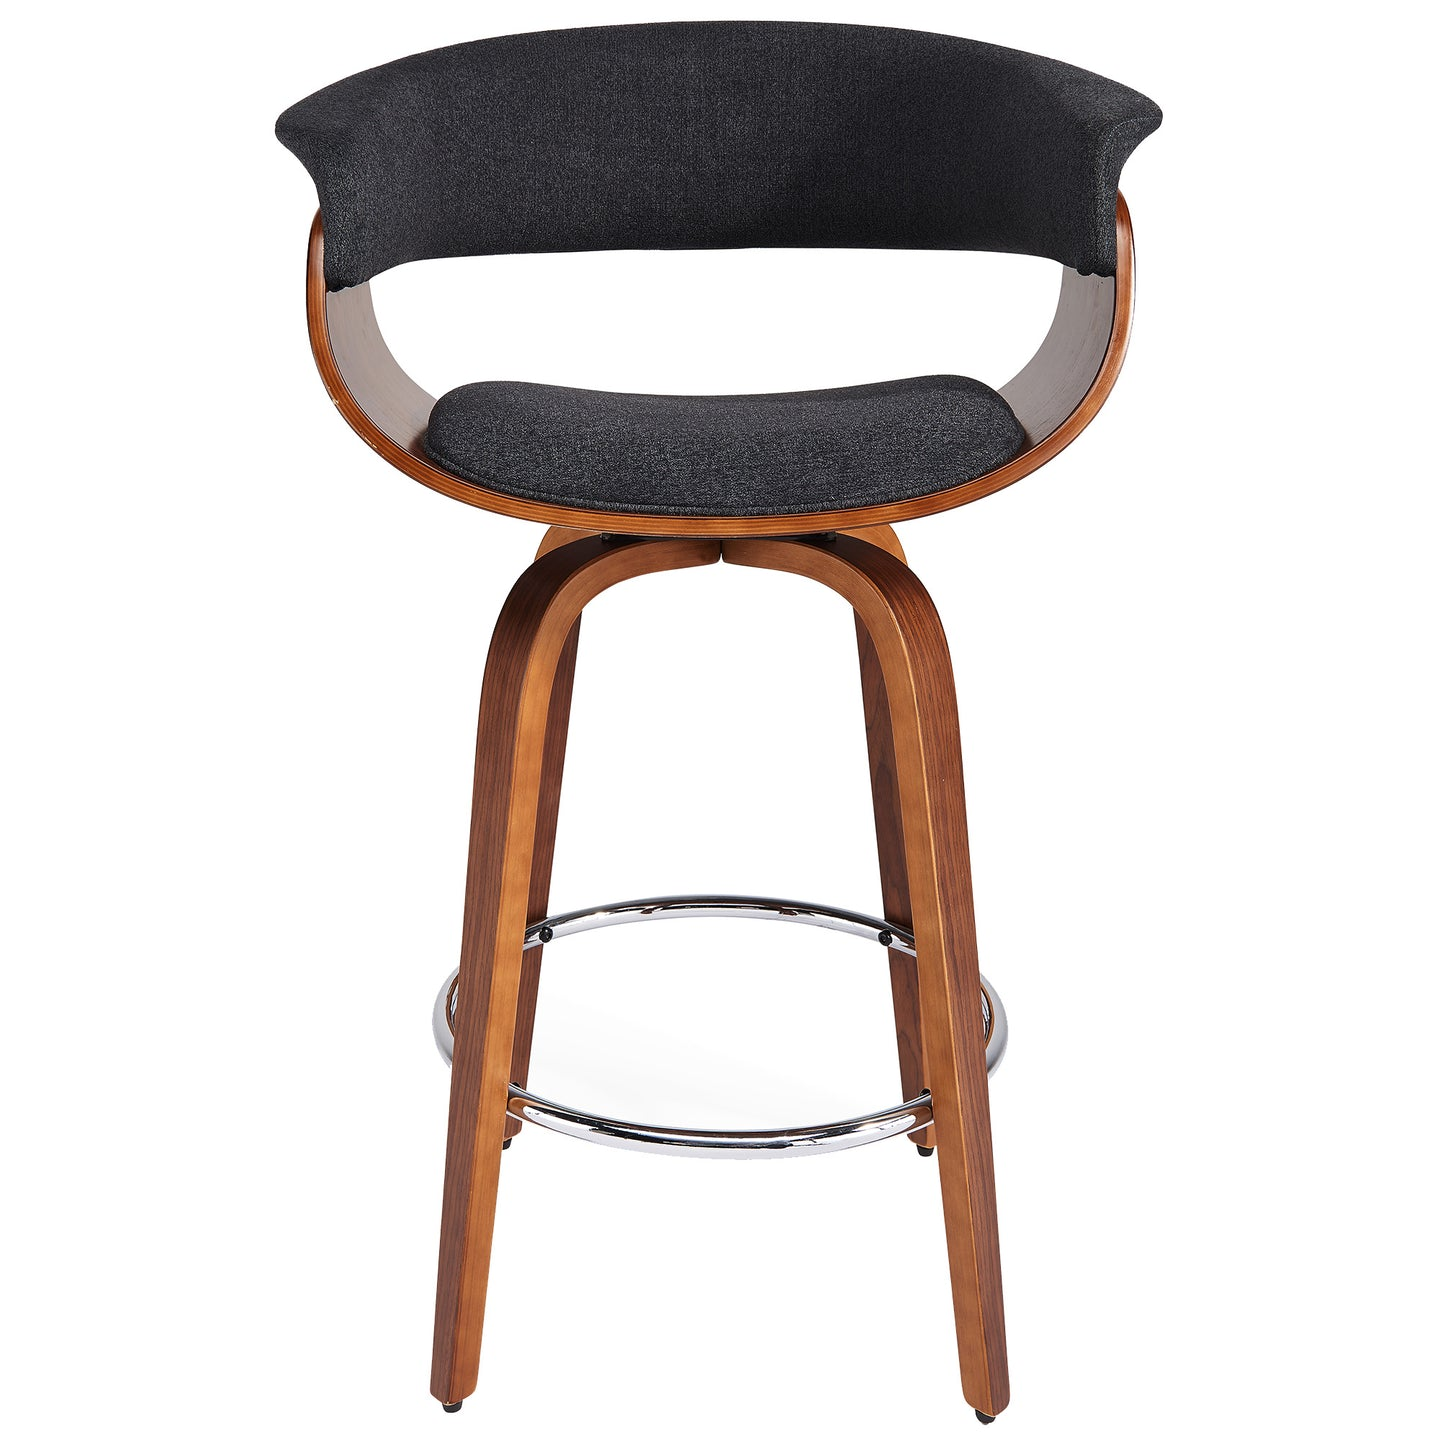 Fine Candace Basil Furniture 26 Counter Stool Charcoal Grey Gmtry Best Dining Table And Chair Ideas Images Gmtryco